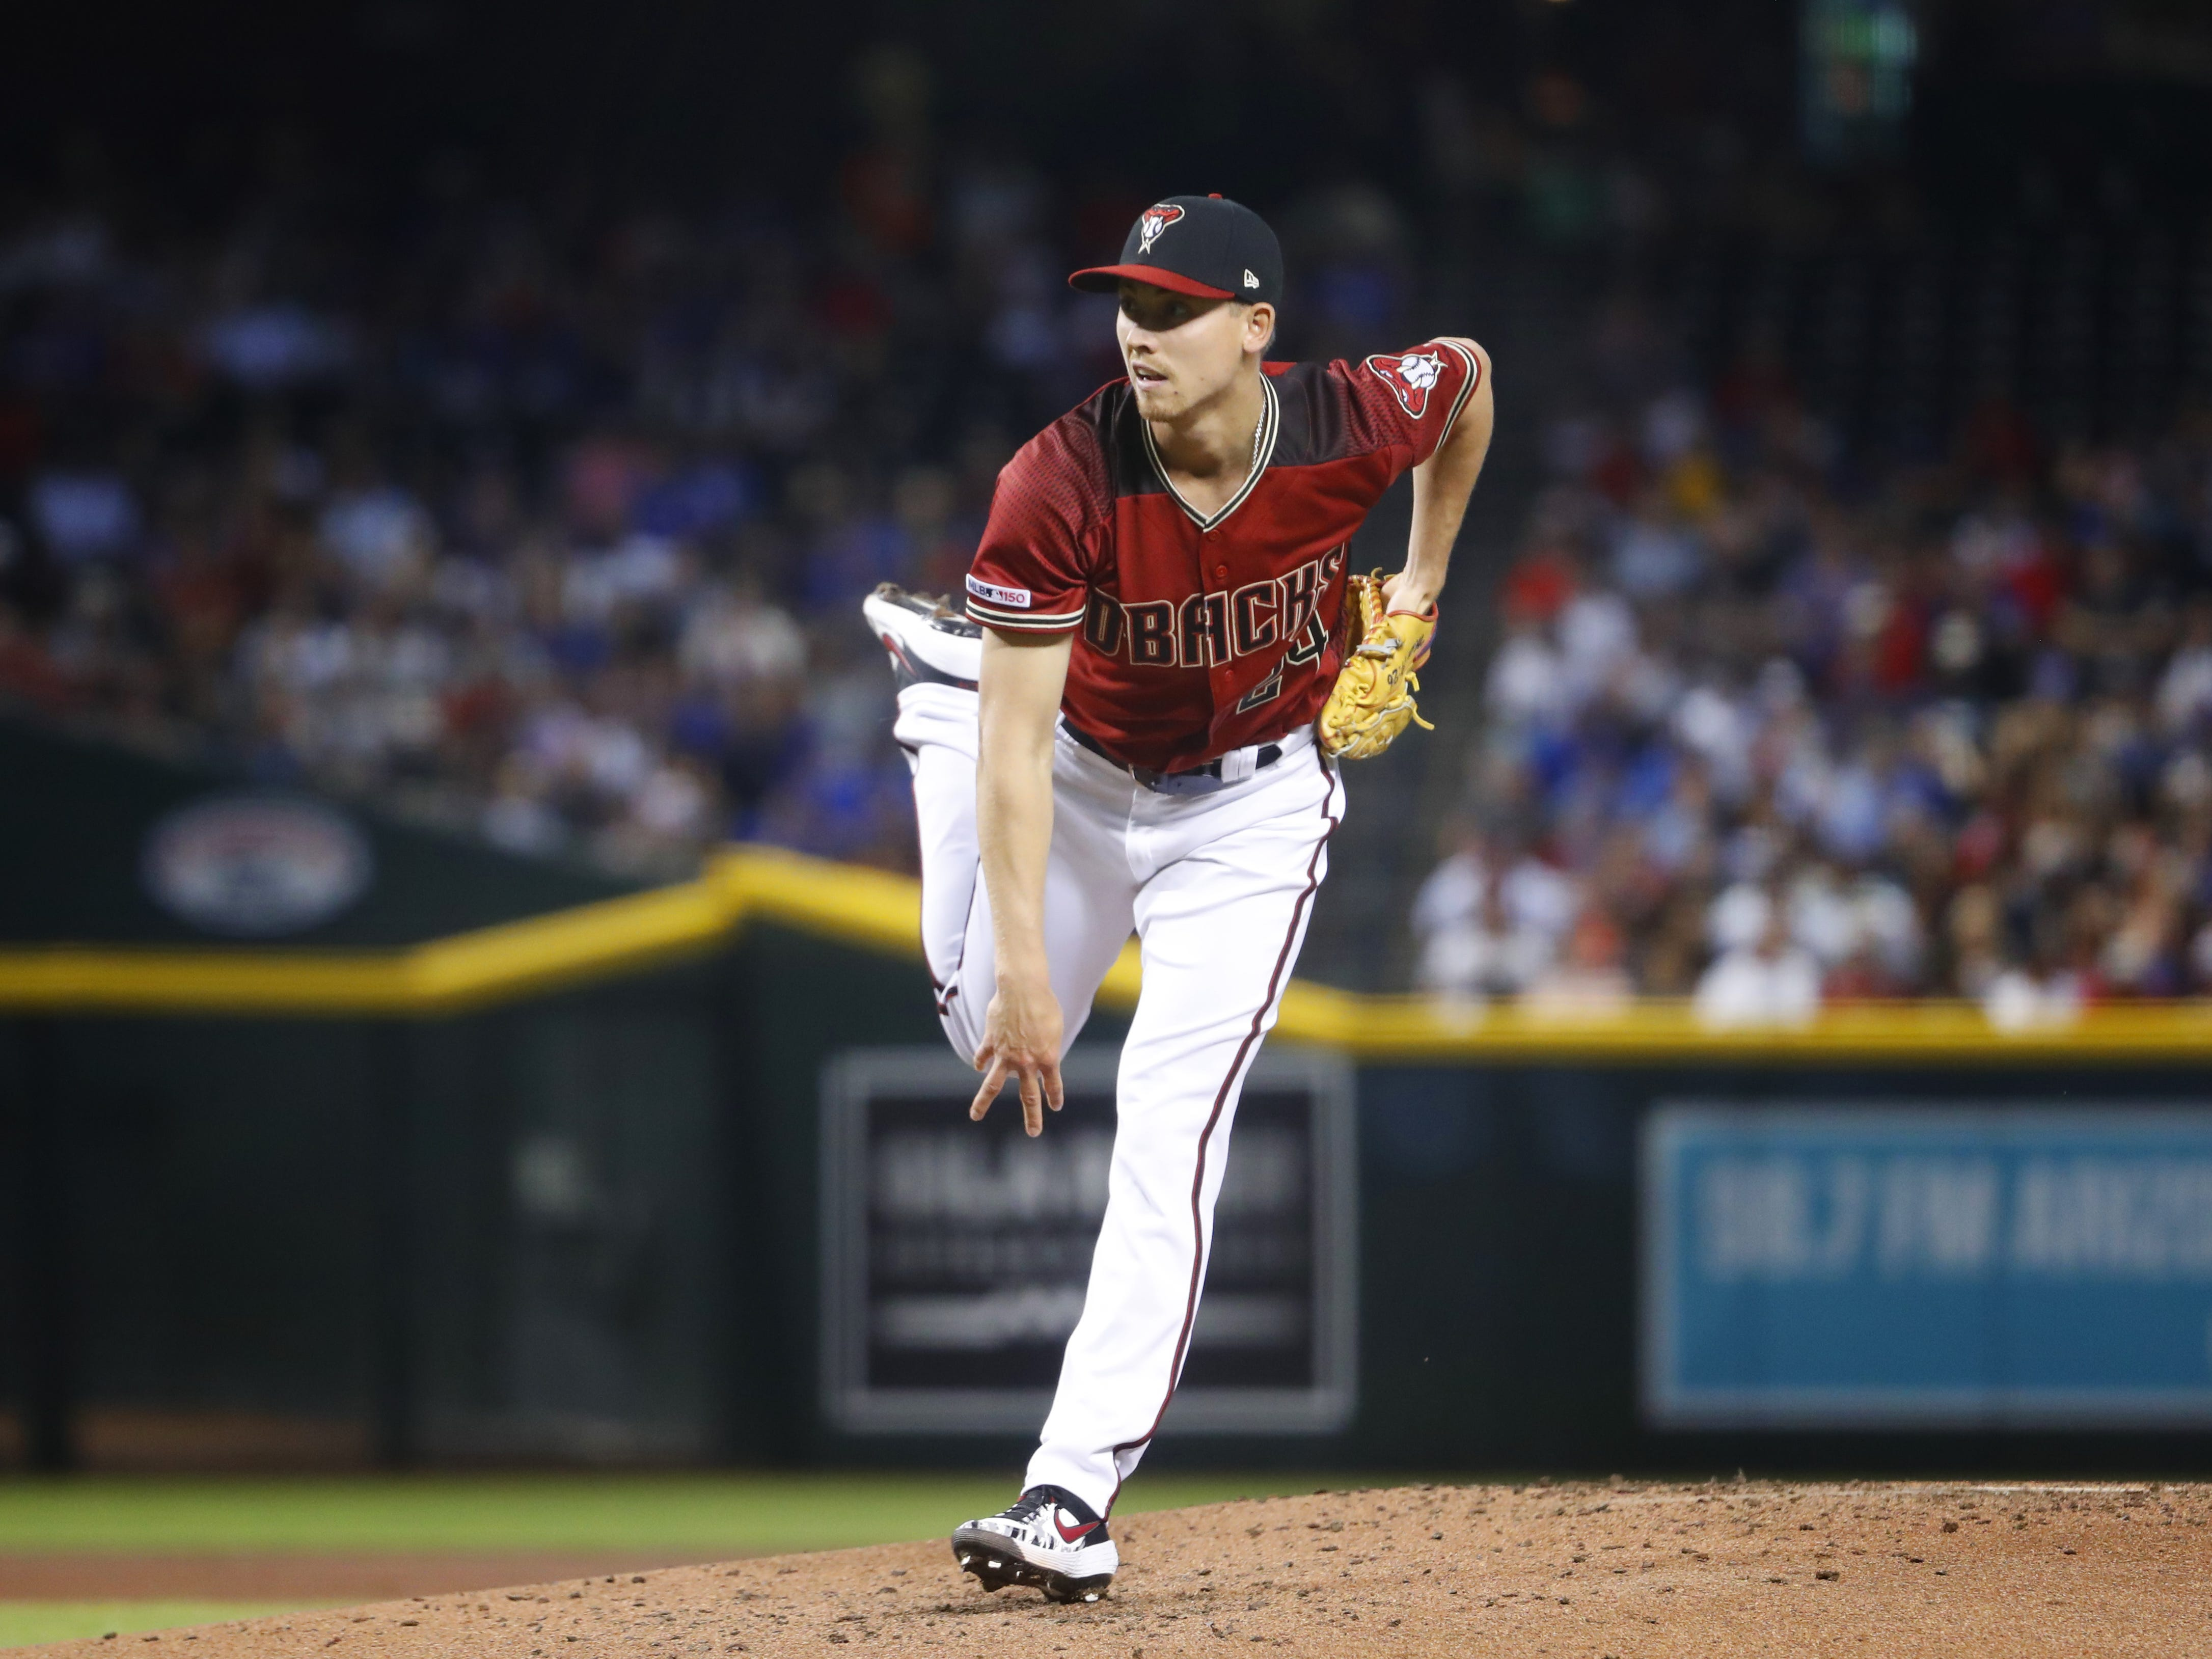 Diamondbacks' Luke Weaver (24) pitches during the first inning against the Cubs at Chase Field in Phoenix, Ariz. on April 28, 2019.